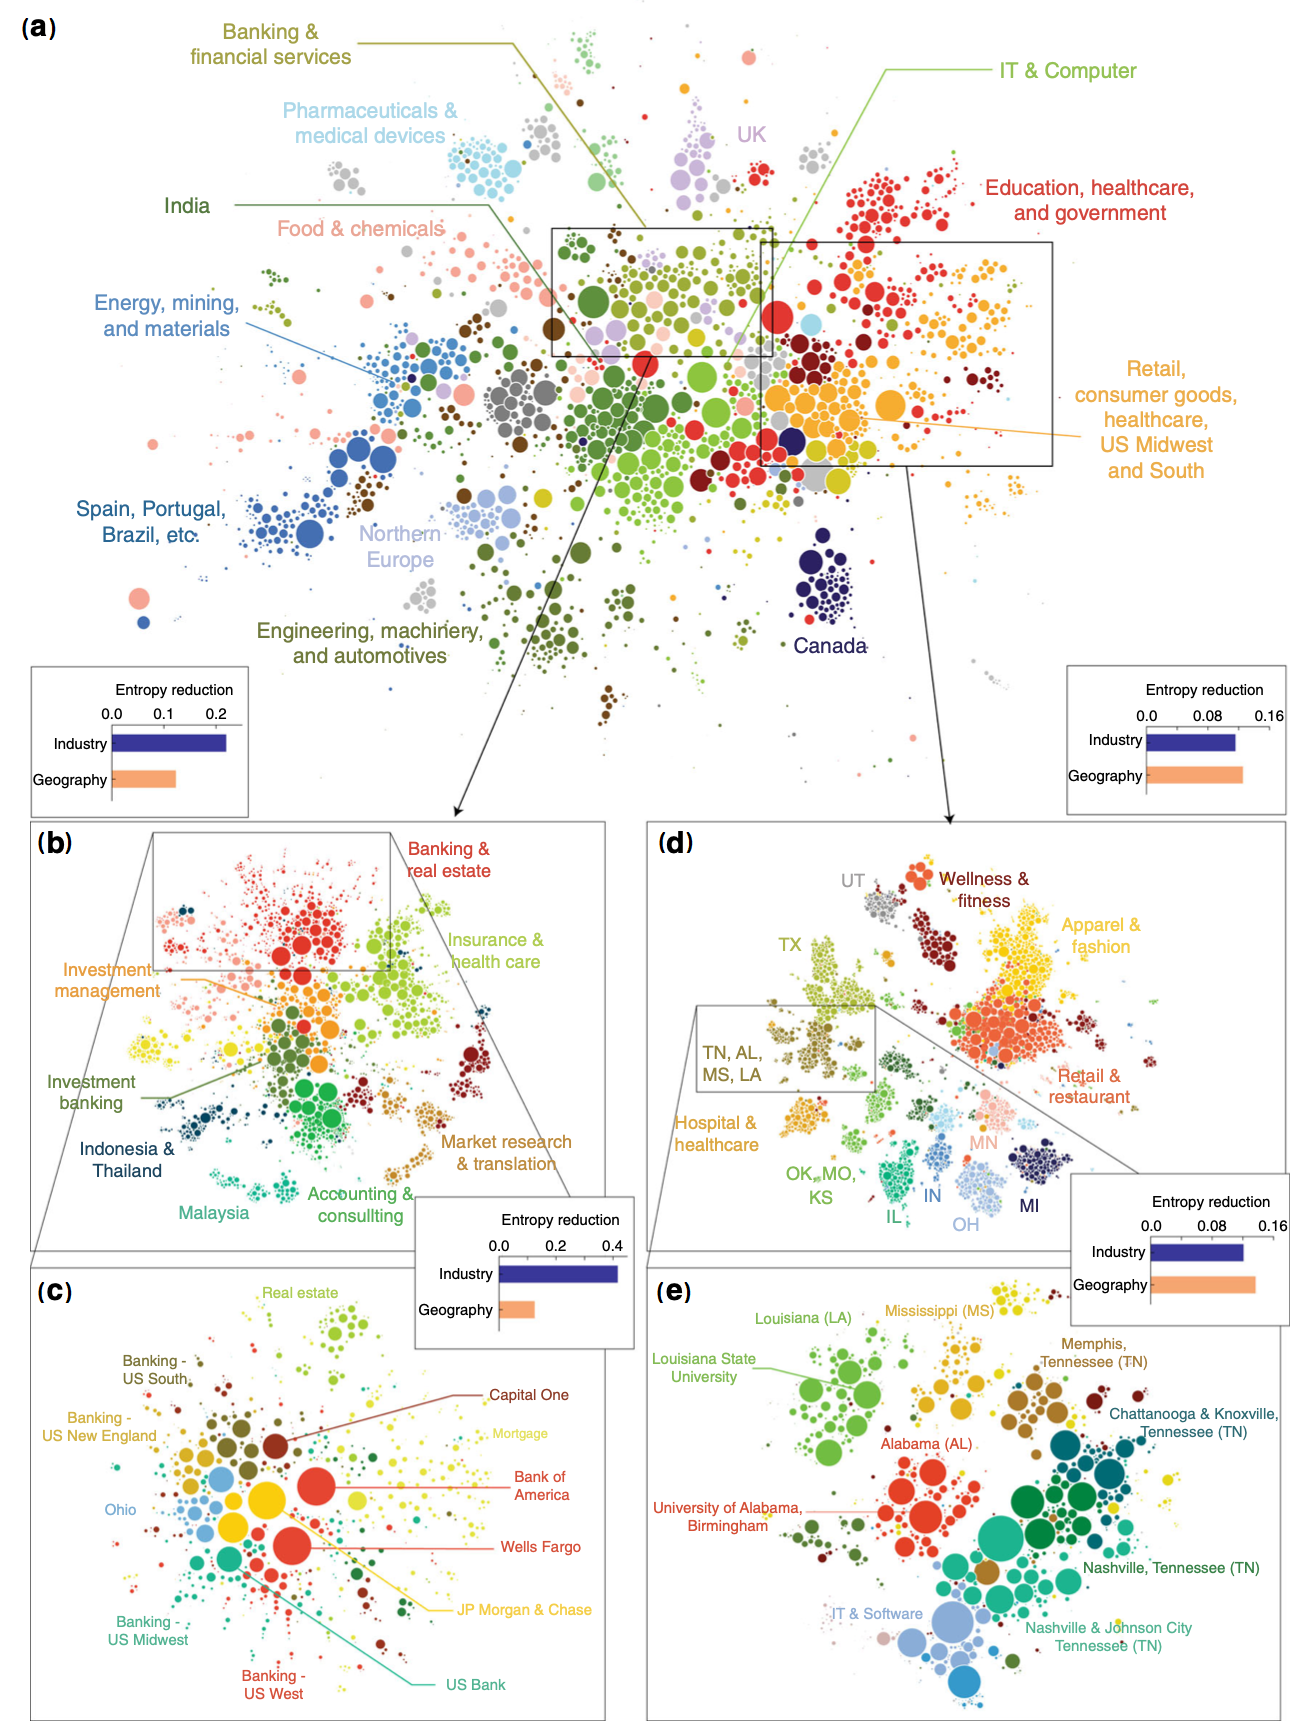 Fig. 4. Hierarchical structure of the labor flow network in Ref. [33] with two examples. (a) Clustering structure in the highest level, where each node represents each geo-industrial cluster and the size of node represents the size of employment in the geo-industrial cluster. (b)‑(e) Two examples to show the structures of lower level clusters in the labor flow network. Entropy figure for each network shows the relative entropy reduction, by moving to the lower level sub-network. (b),(c)Example of banking industry, where firms are clustered more by sub-industries than sub-regions. (d),(e)Example of retail, consumer good, and healthcare industry in US Midwest and South, where firms are clustered more by sub-regions than by sub-industries.